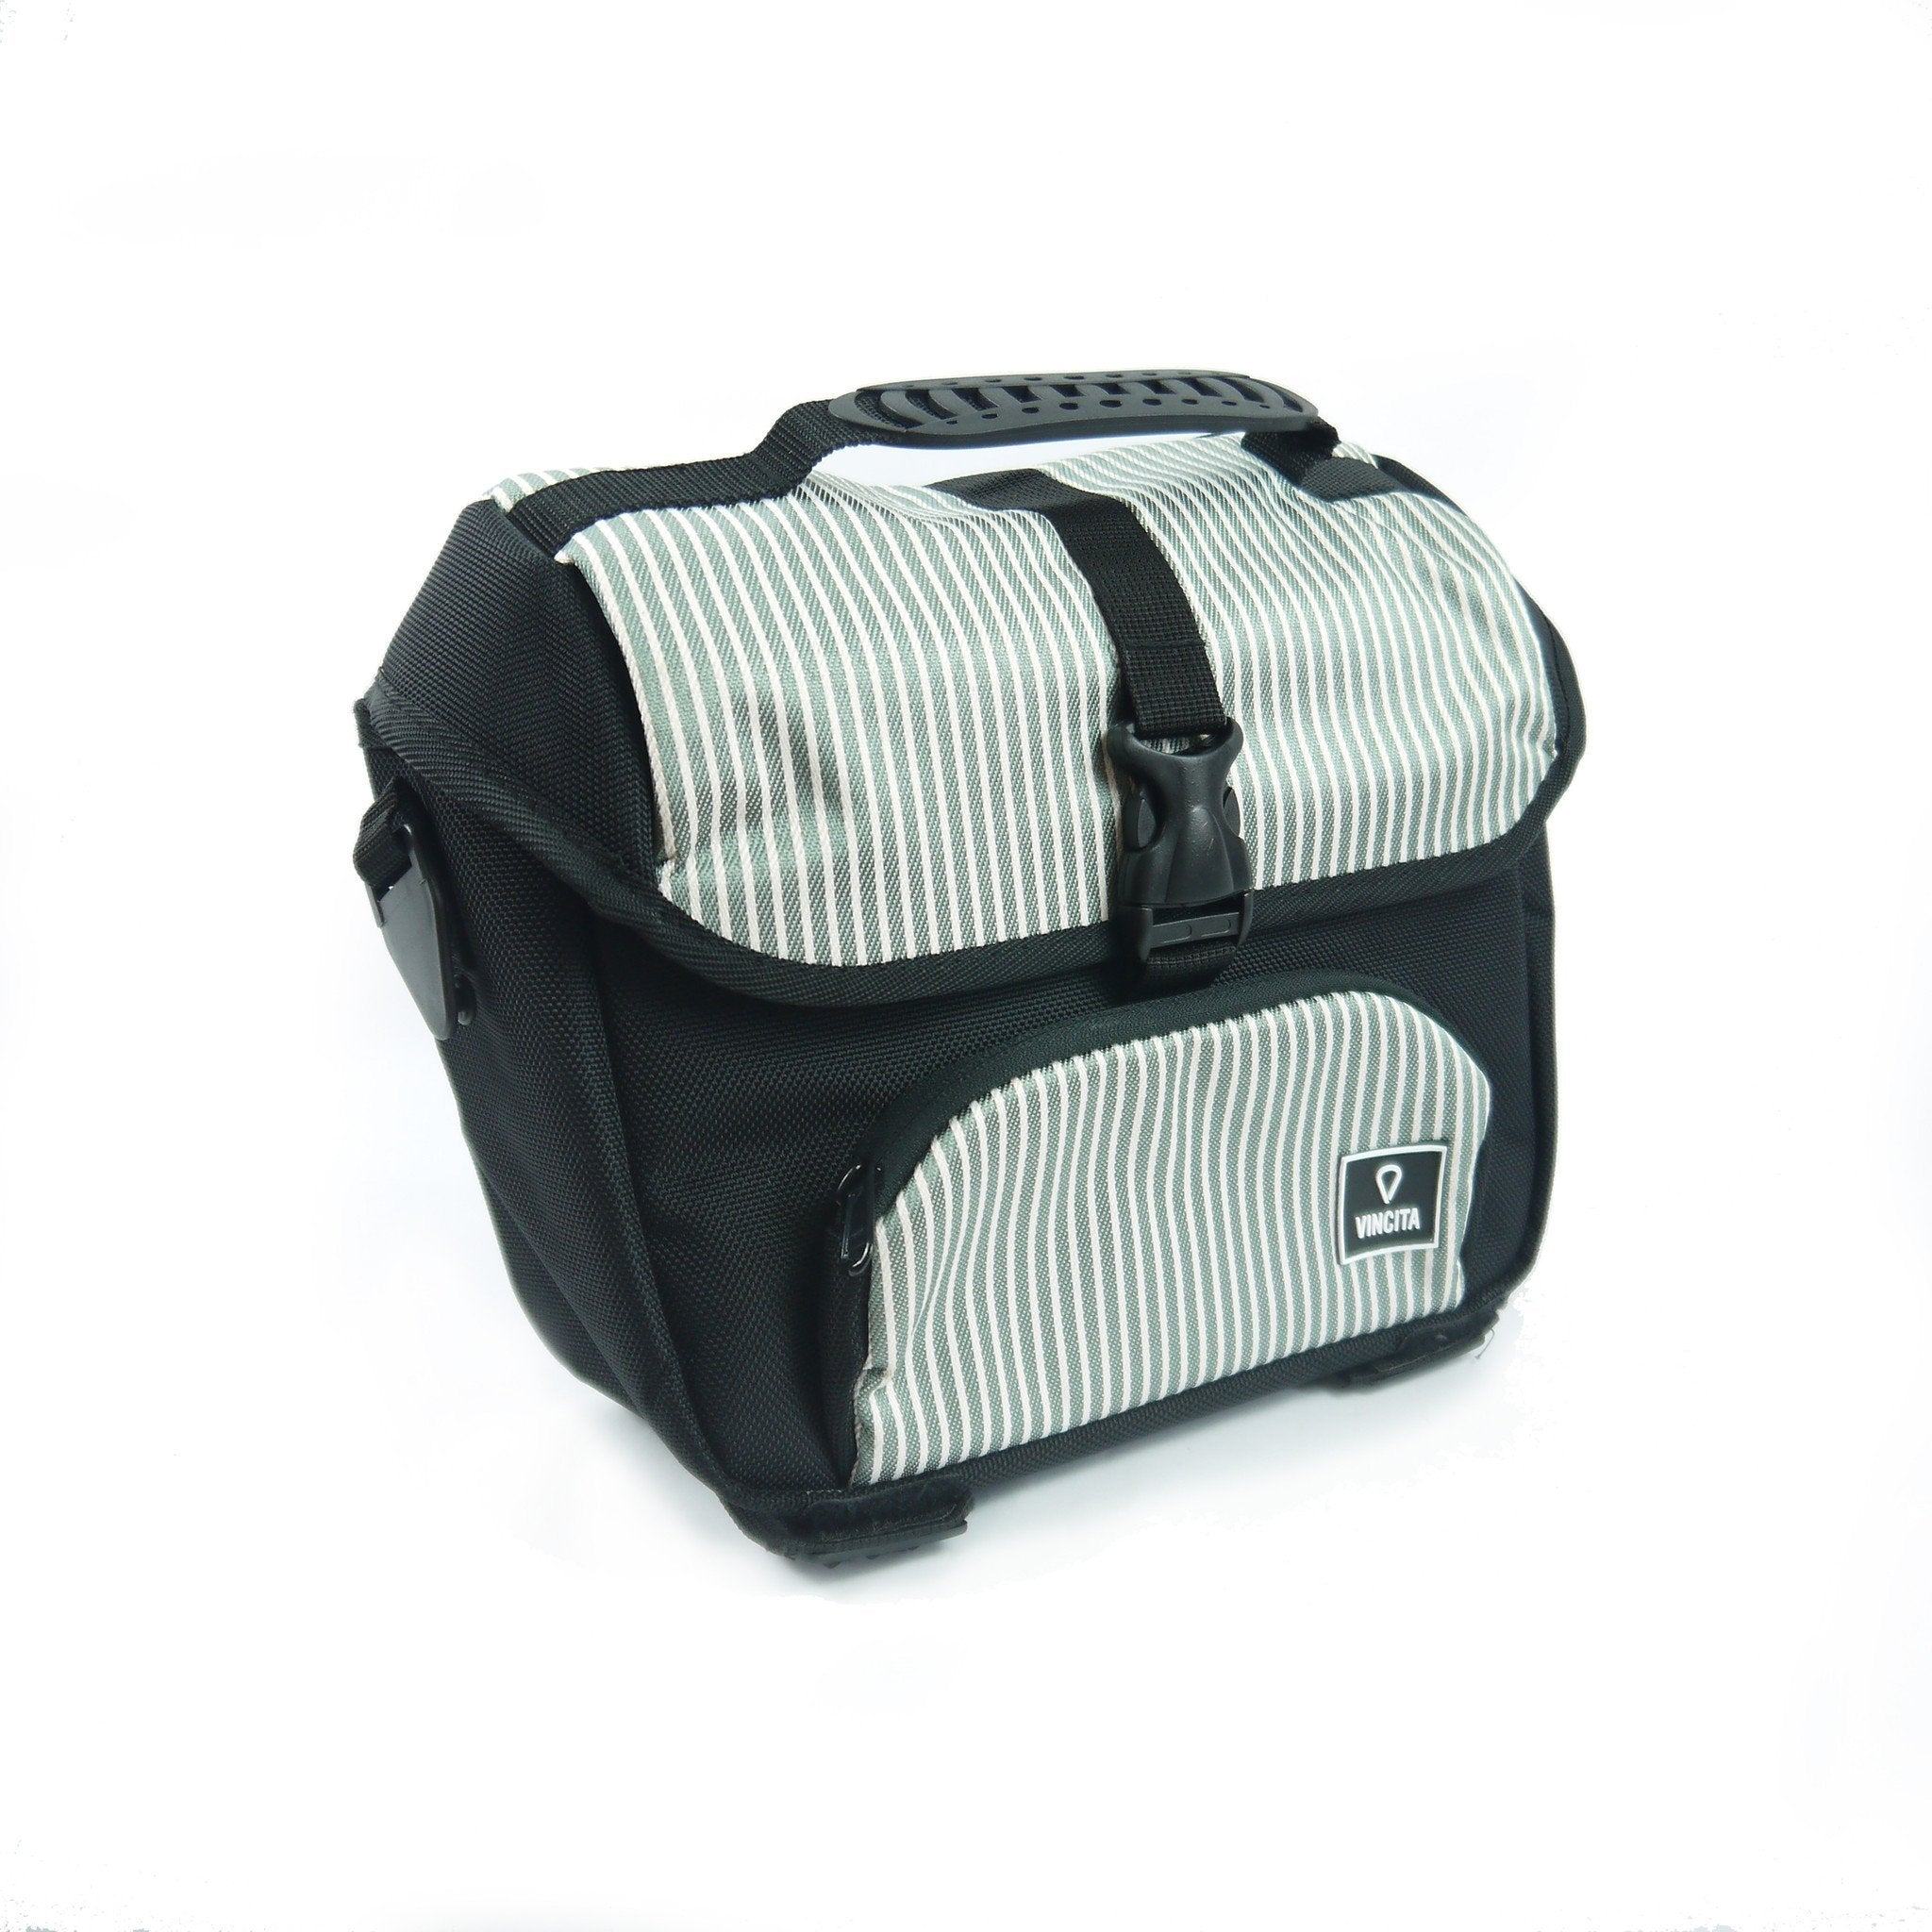 Vincita Co., Ltd. bicycle bag Grey with white strip / th B017D-K Mini Front Bag for Brompton with KlickFix Adapter